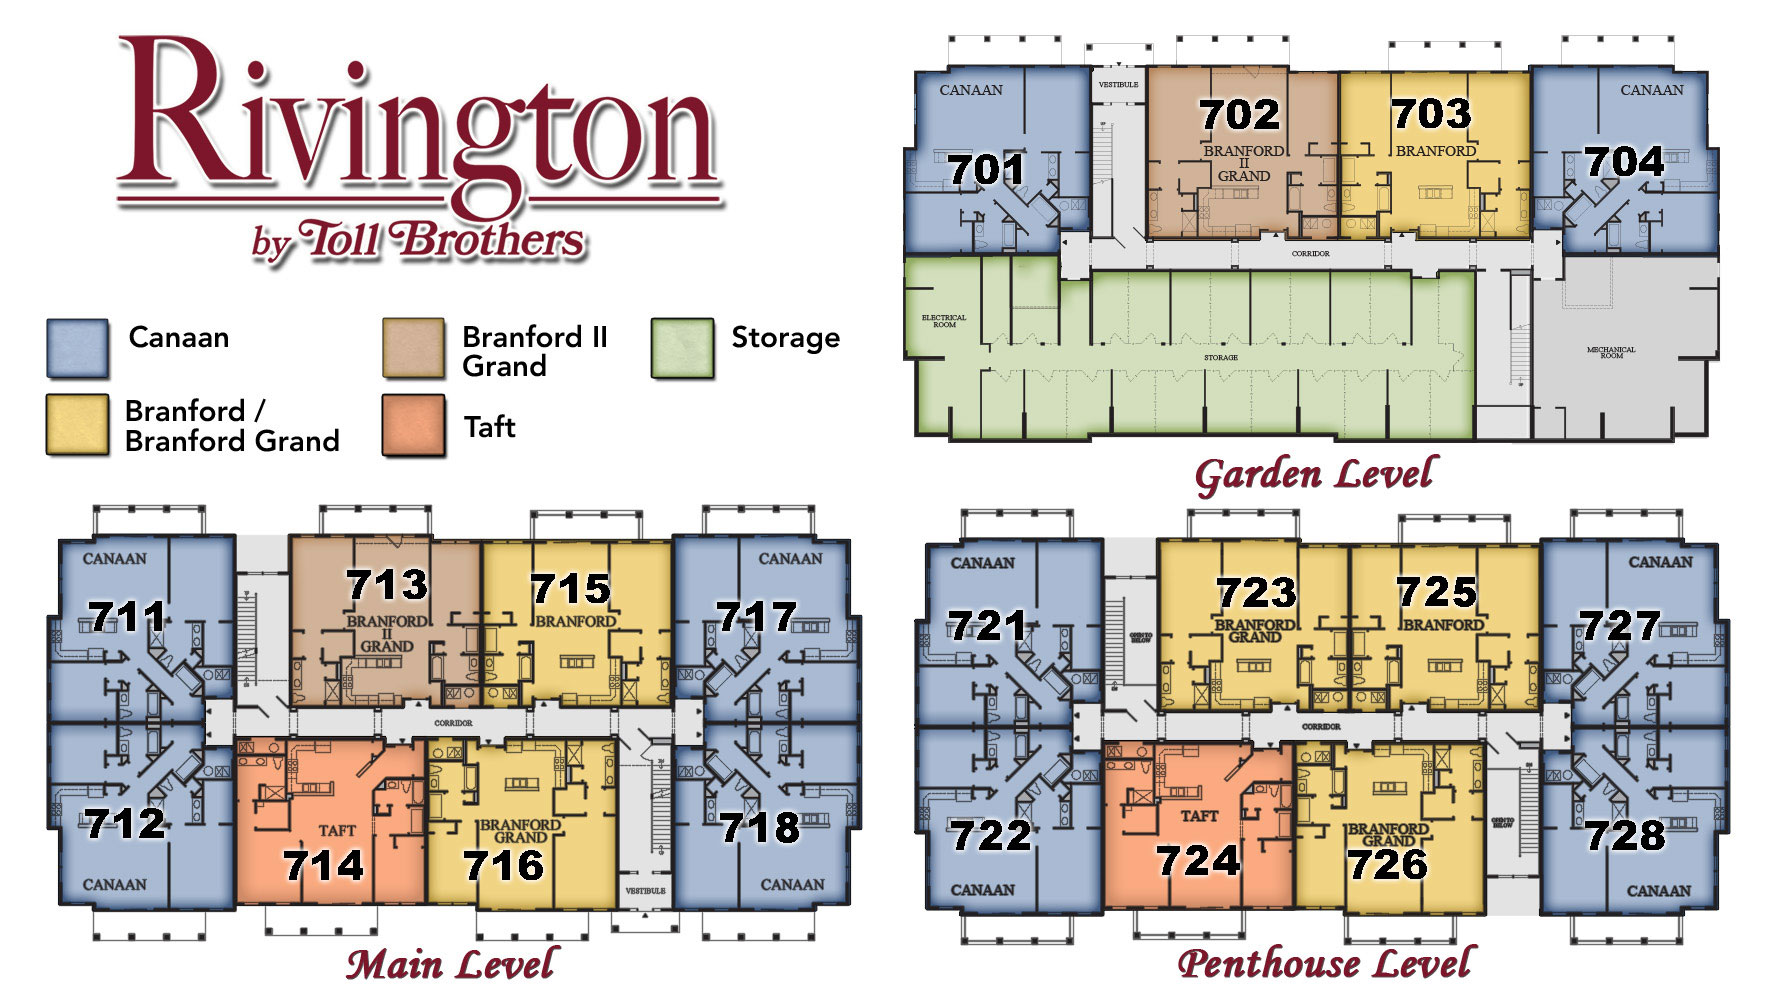 Rivington by Toll Brothers Building 700 Site Plan